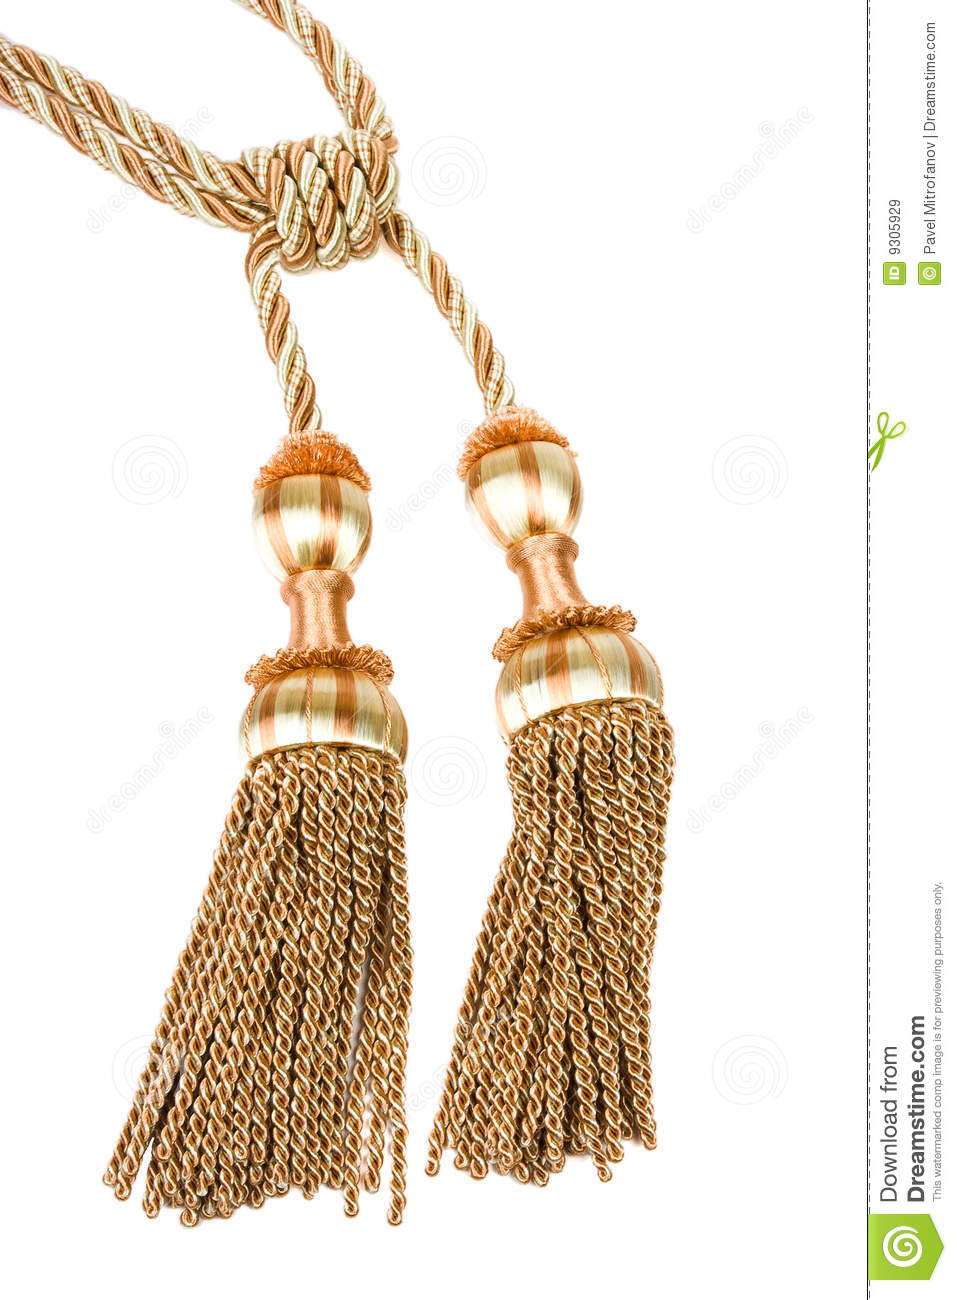 Curtain tassel royalty free stock images image 9305929